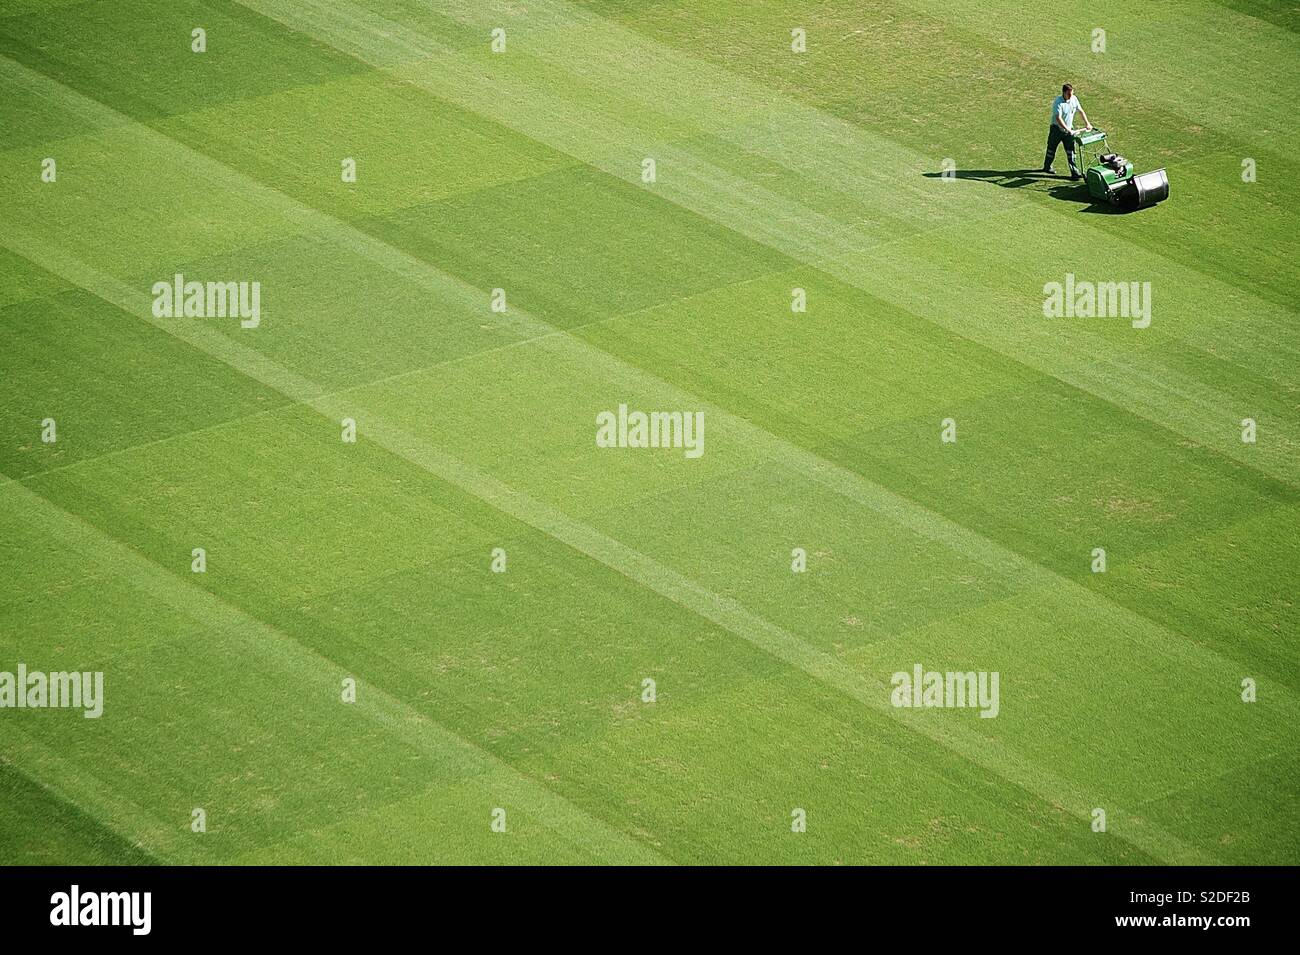 A groundsman cuts the grass. Stock Photo